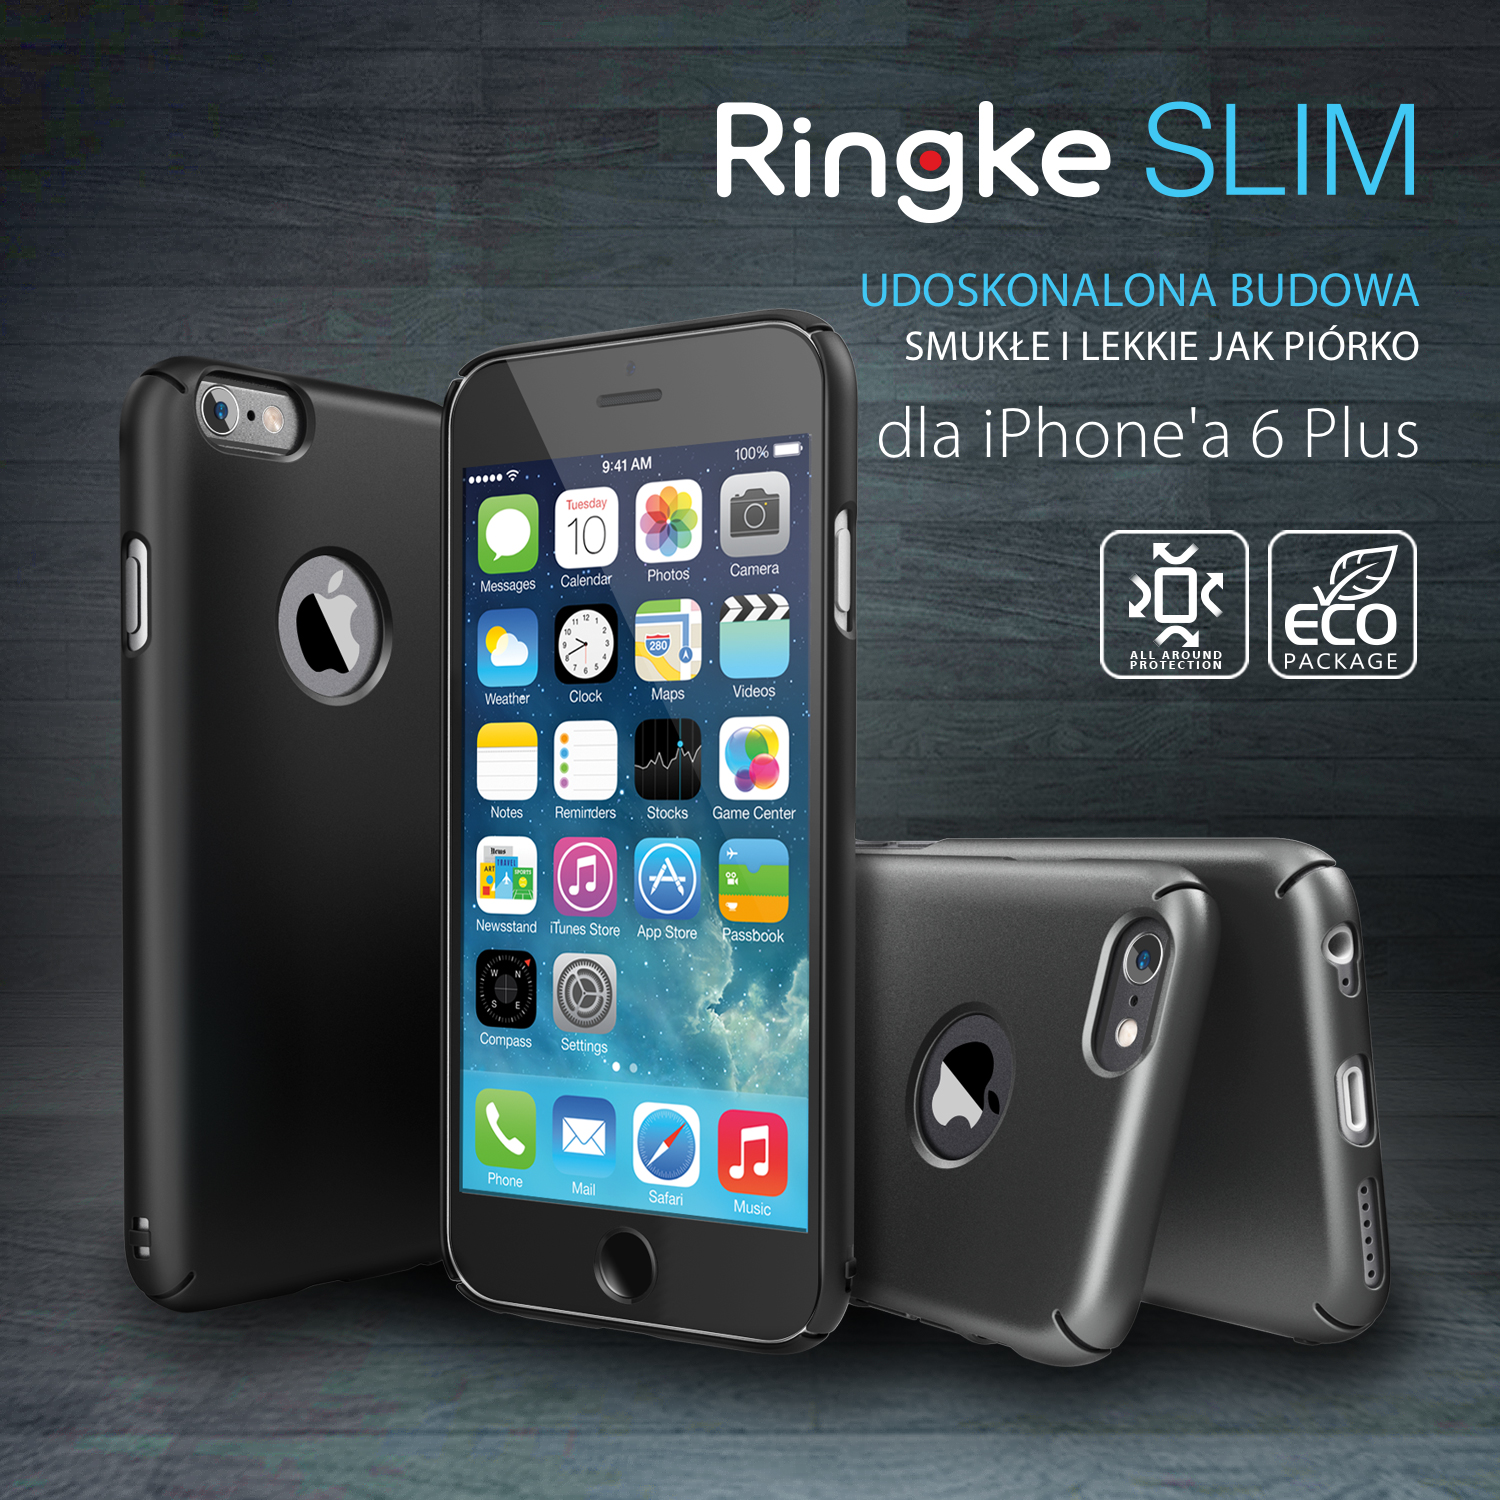 ringke slim iphone 6 homescreen